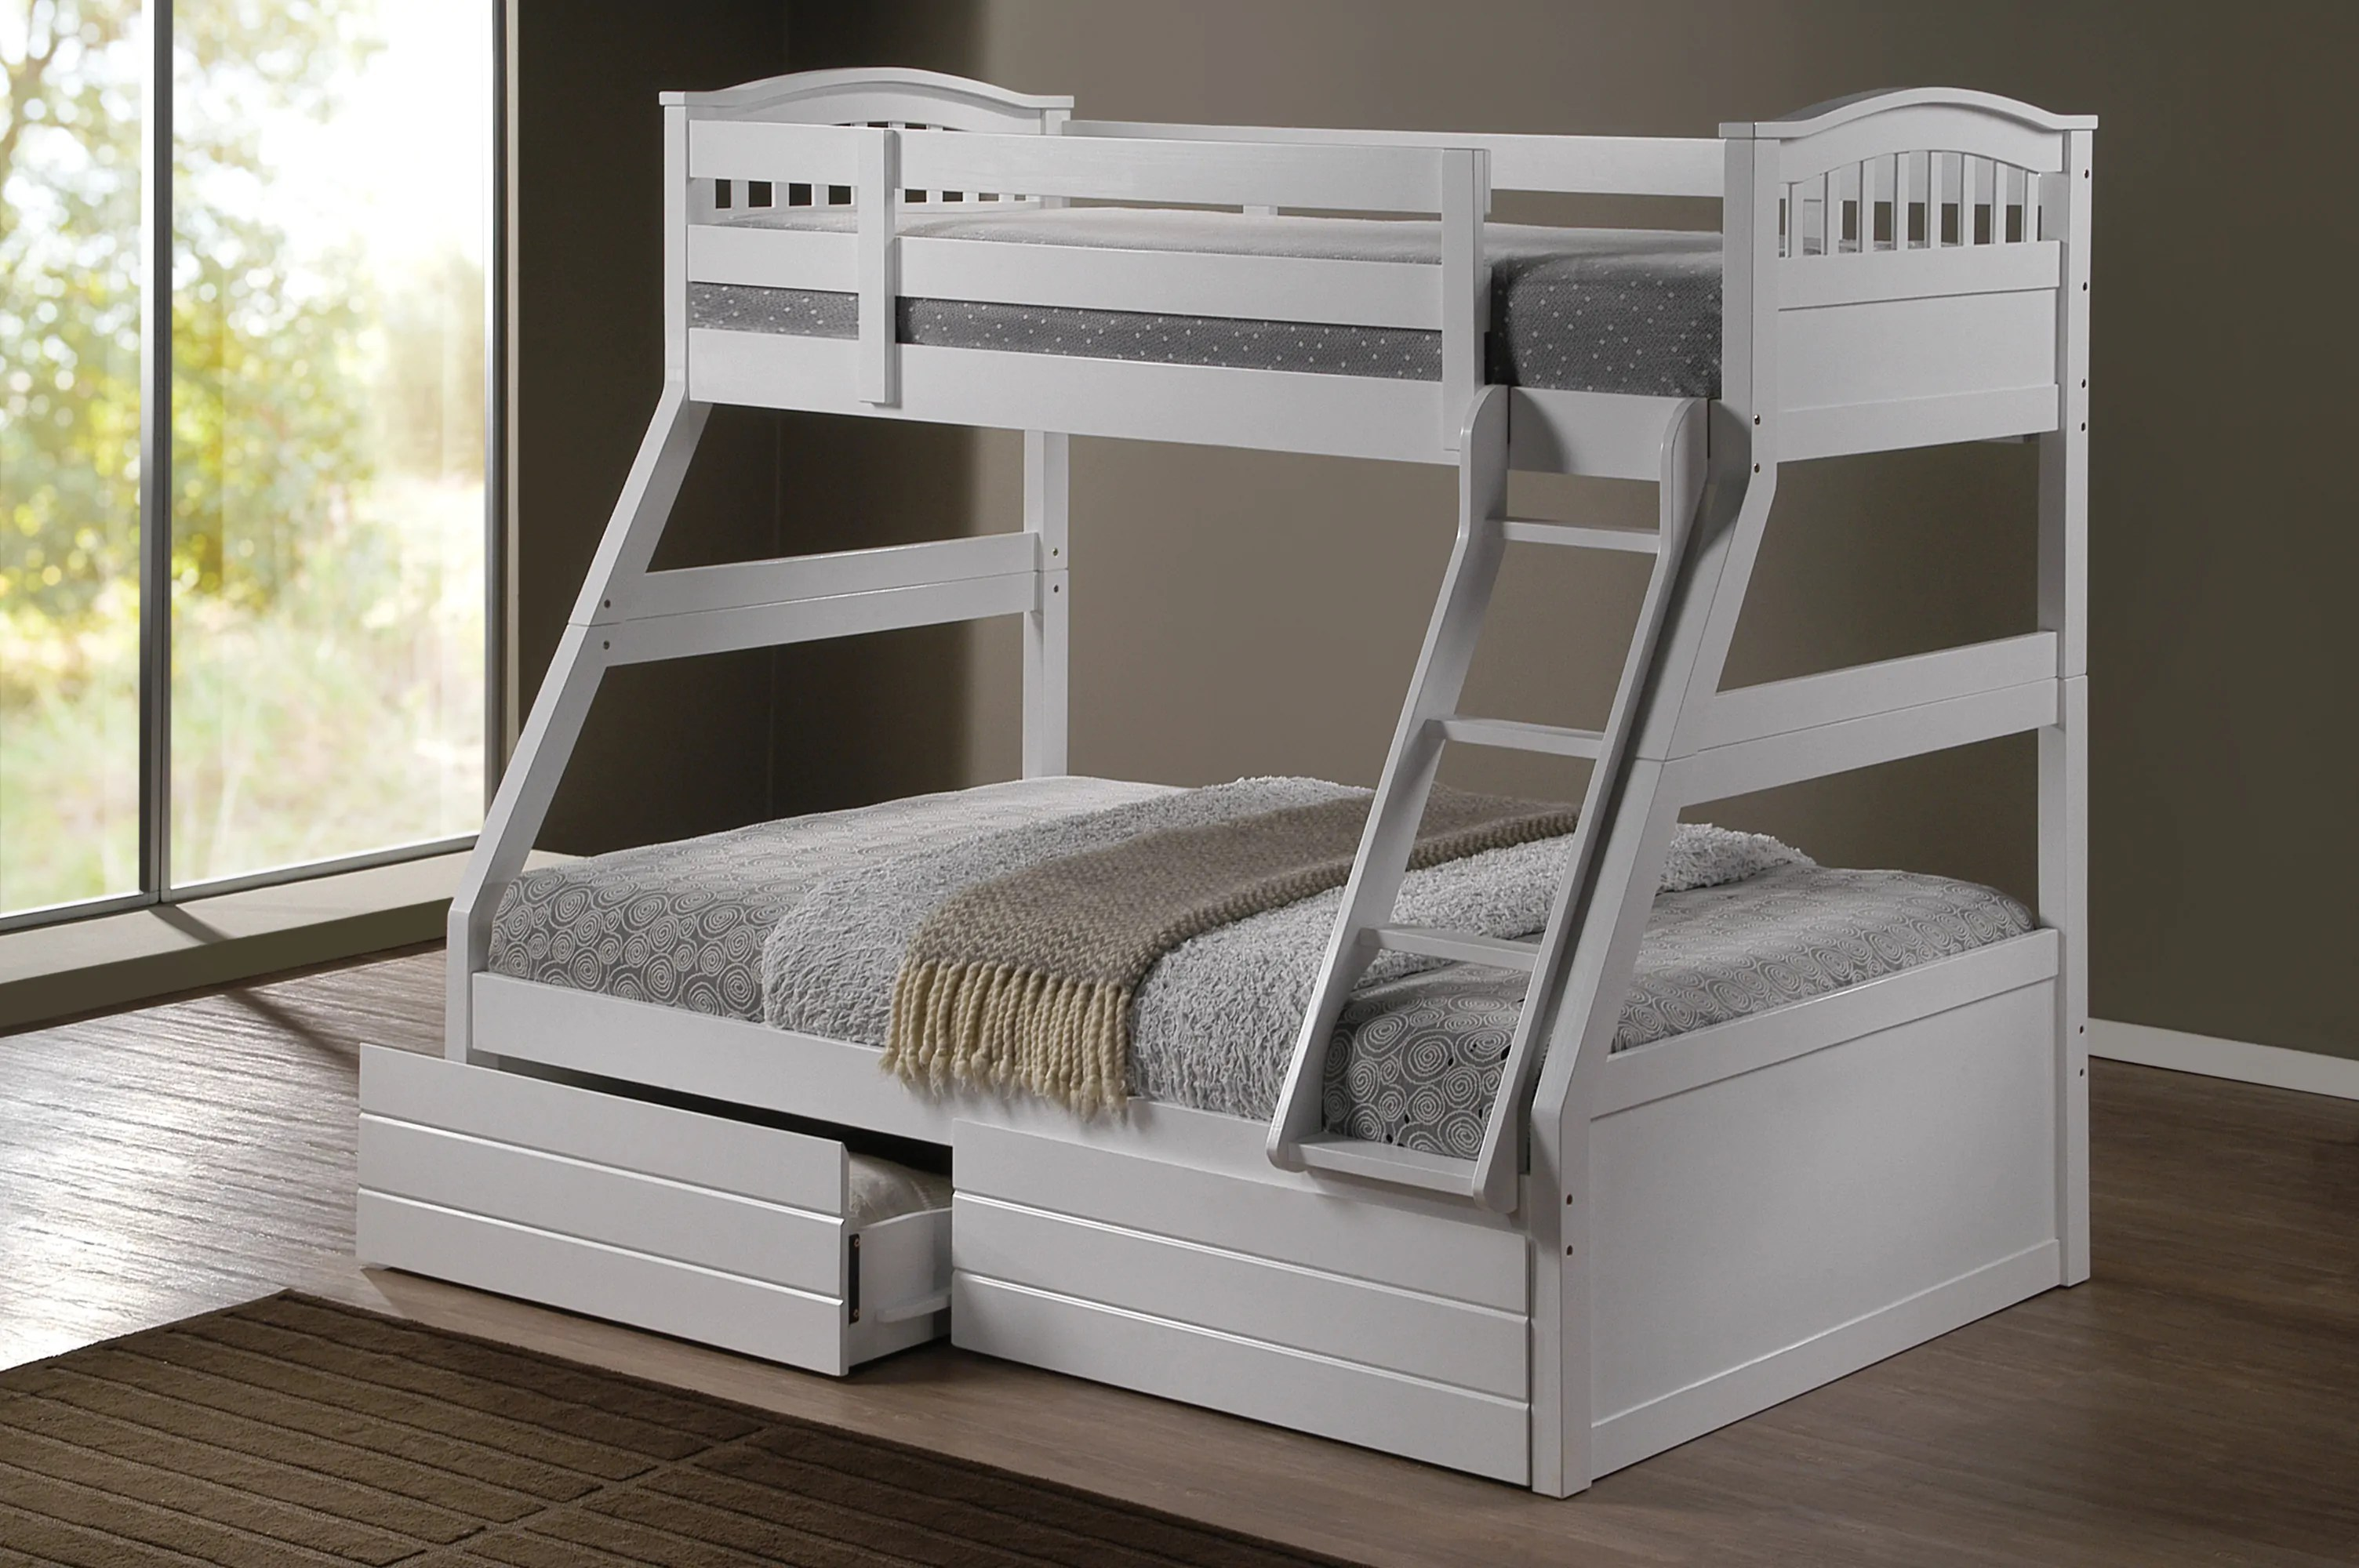 Double Bed With Drawers Ashley White Duo Double Single Bunk Beds With Drawers